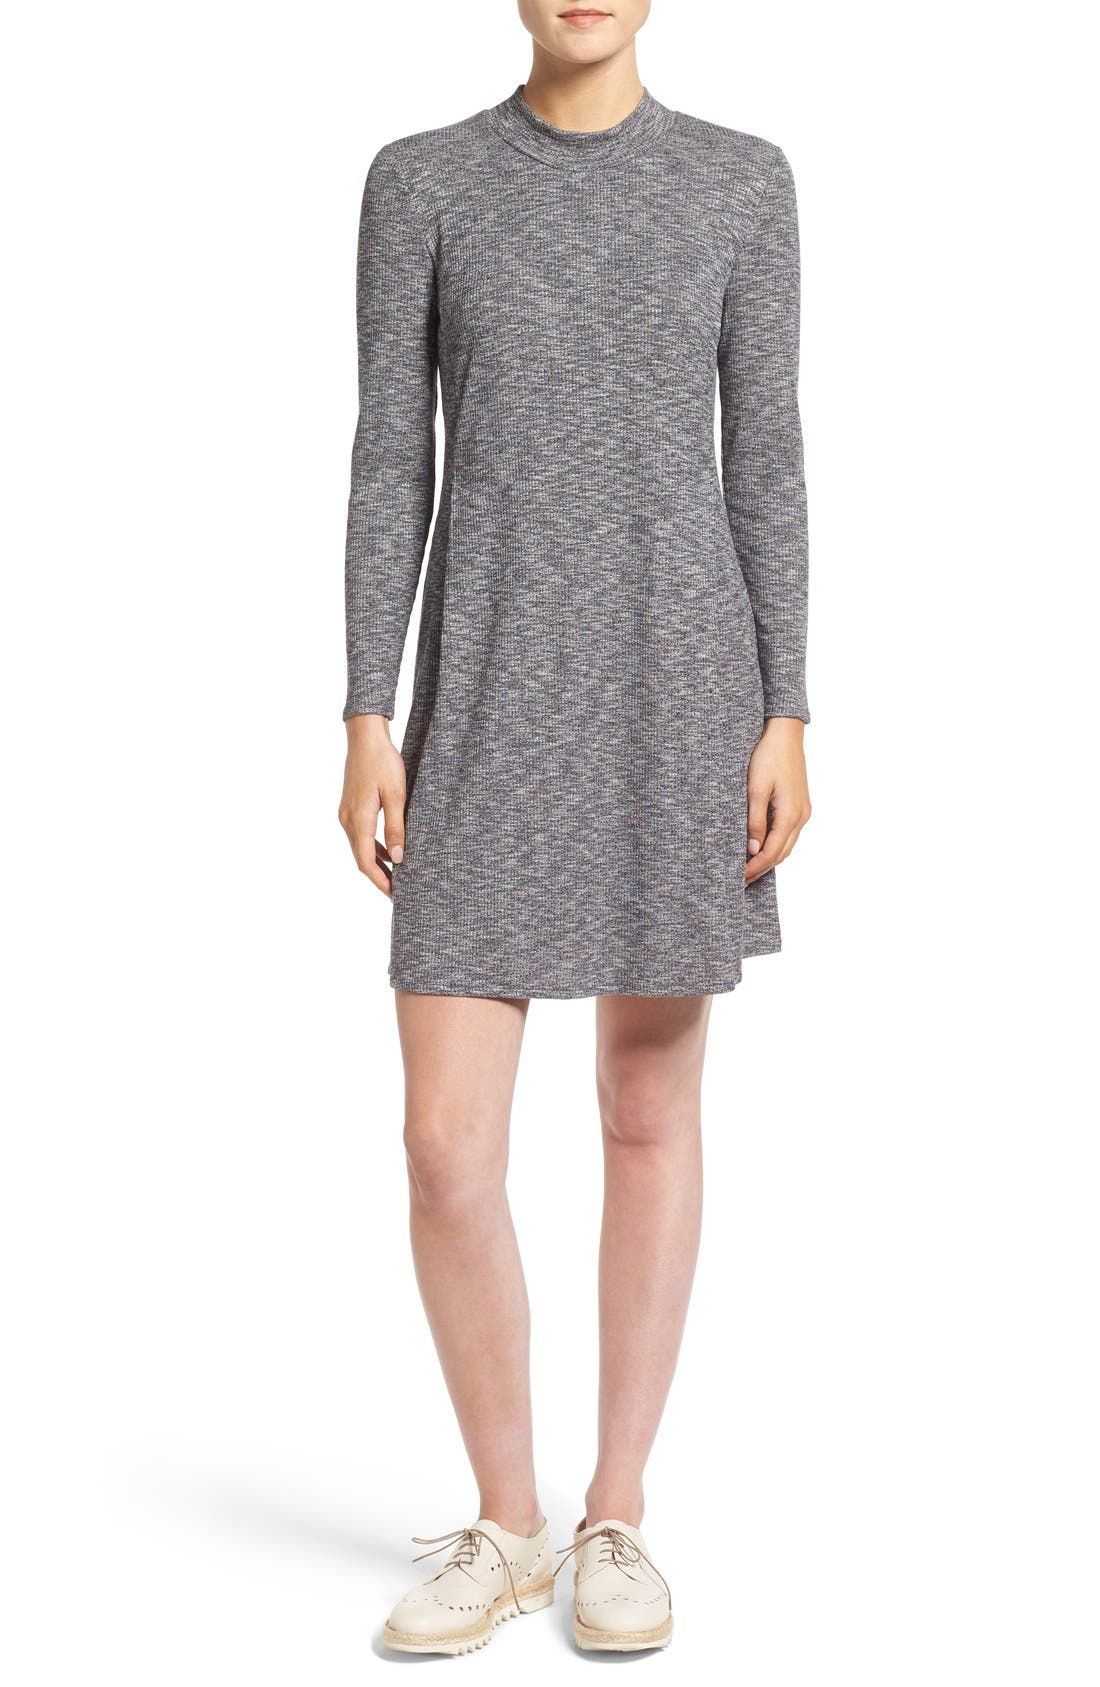 Alternate Image 1 Selected - Madewell Mock Neck Marled Knit Dress